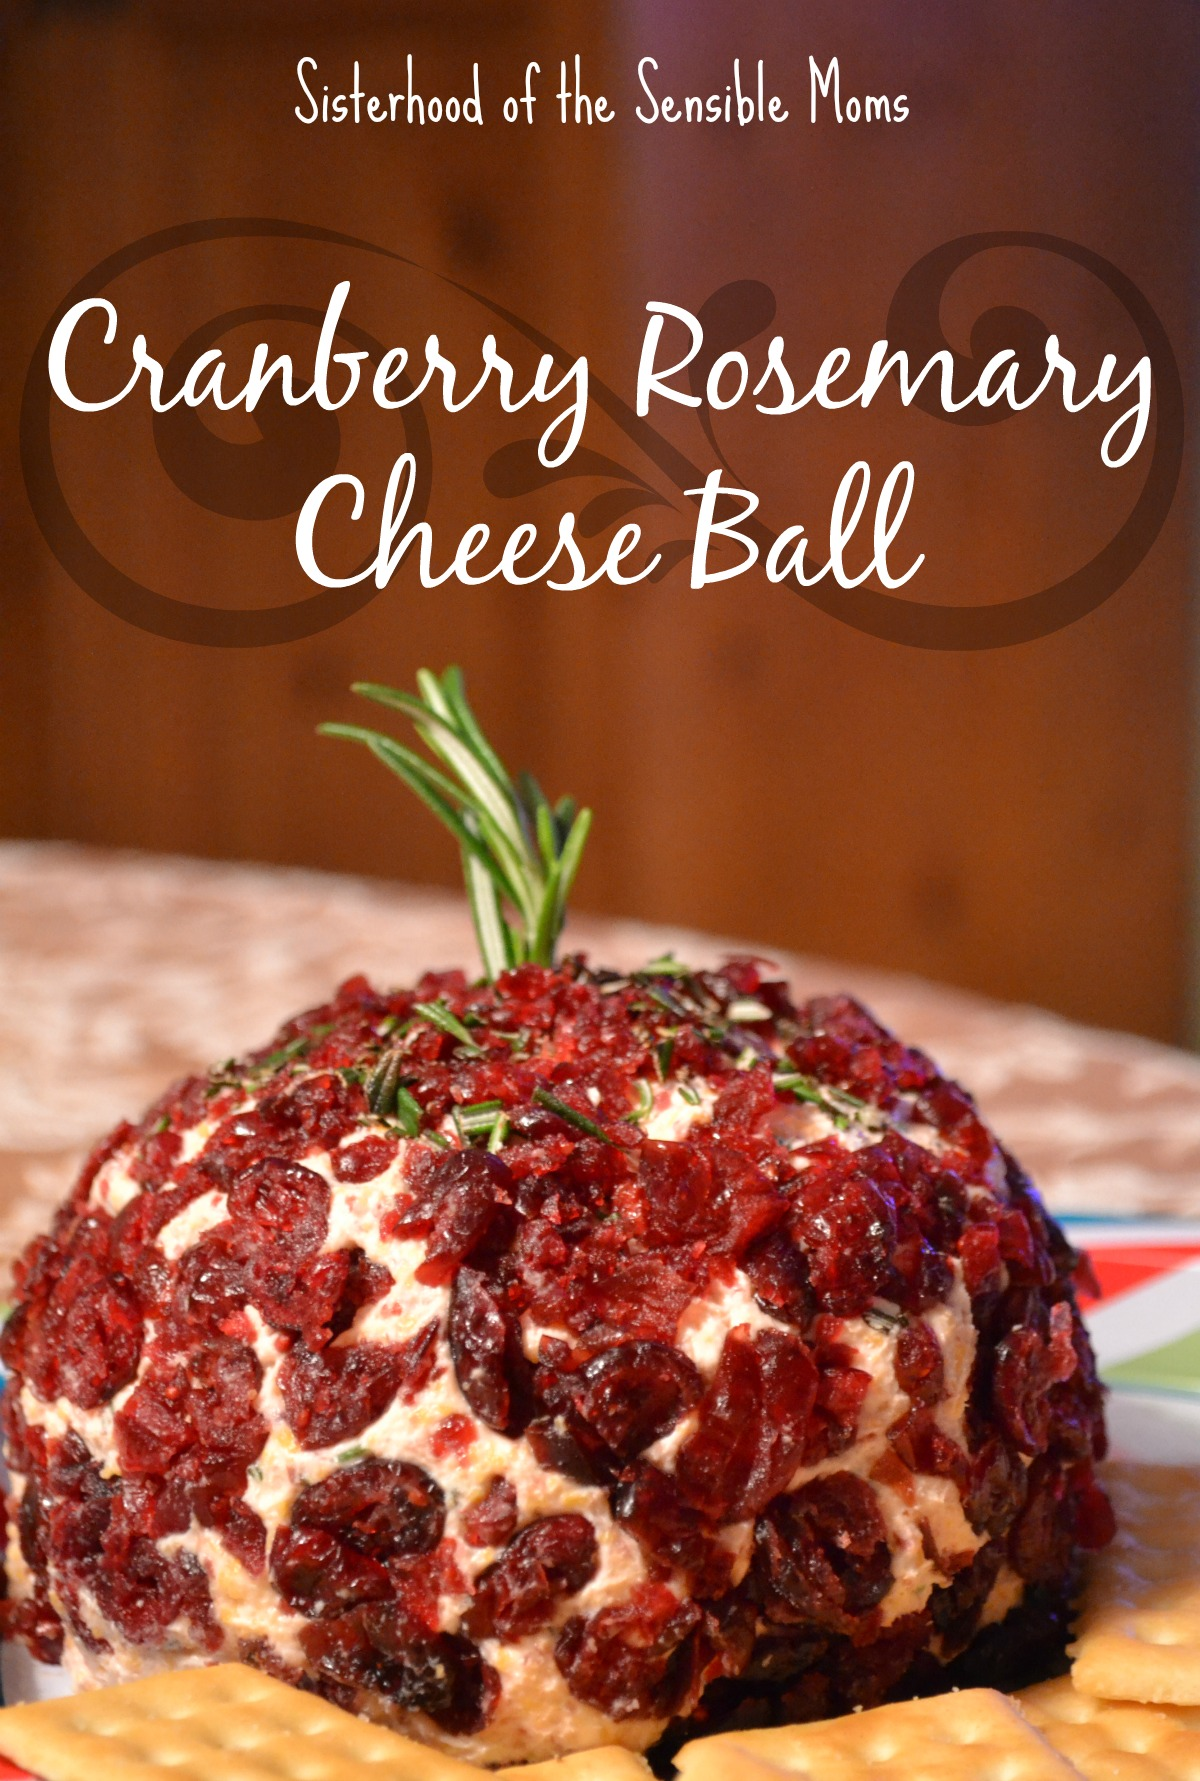 Cranberry Rosemary Cheese Ball | Cranberry recipes for a party or every day! Let's hear it for cranberry, that culinary trooper that is often an afterthought! Here's some cranberry recipes for drinks, appetizers, and main dishes that will bring it front and center! Sisterhood of the Sensible Moms